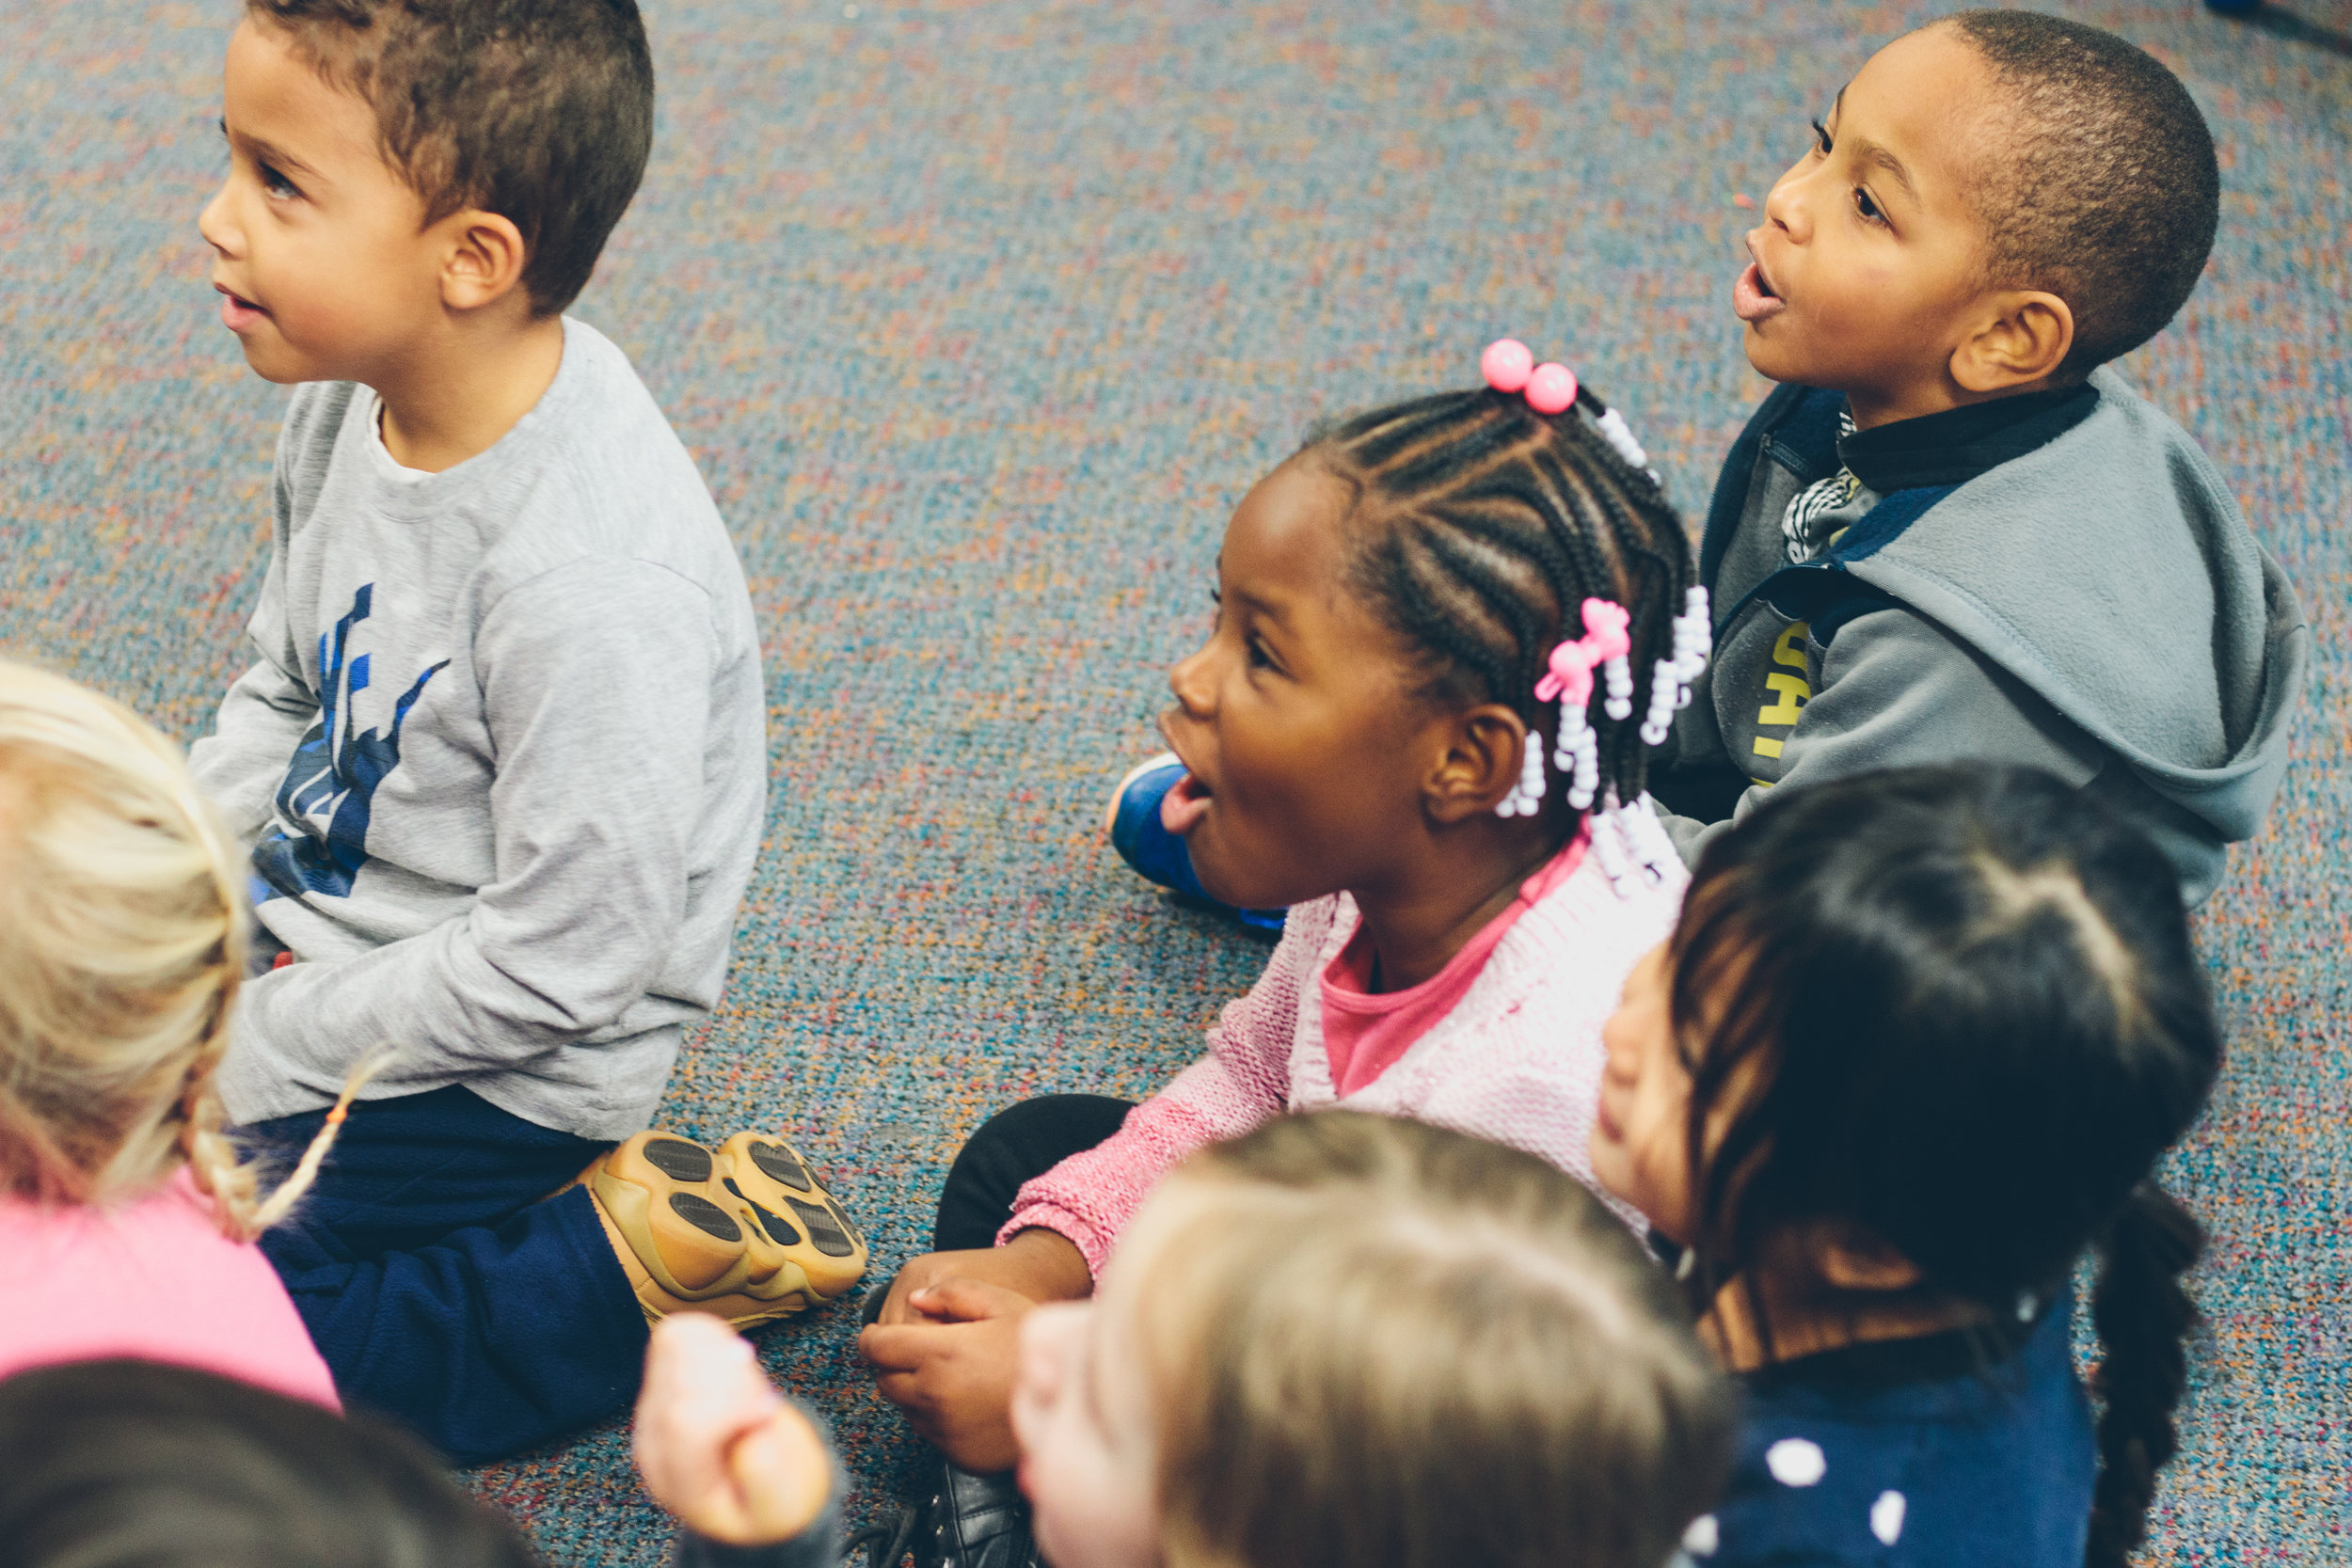 About Us - Children's Academy is licensed by the State of Ohio Board of Education and provides childcare 6 a.m. - 6 p.m. Monday through Friday.We serve children from 12 months through 12 years of age, including:InfantToddlerPreschoolPre-KindergartenKindergartenFirst and Second GradeBefore and after school care for school-age childrenSummer and school break care for school-age children. Each day, children are served a nutritious breakfast, lunch, and afternoon snack in a family style setting. Our staff is professional and care about children. Staff are trained in CPR, First Aid, Communicable Diseases, and Child Abuse and Neglect.